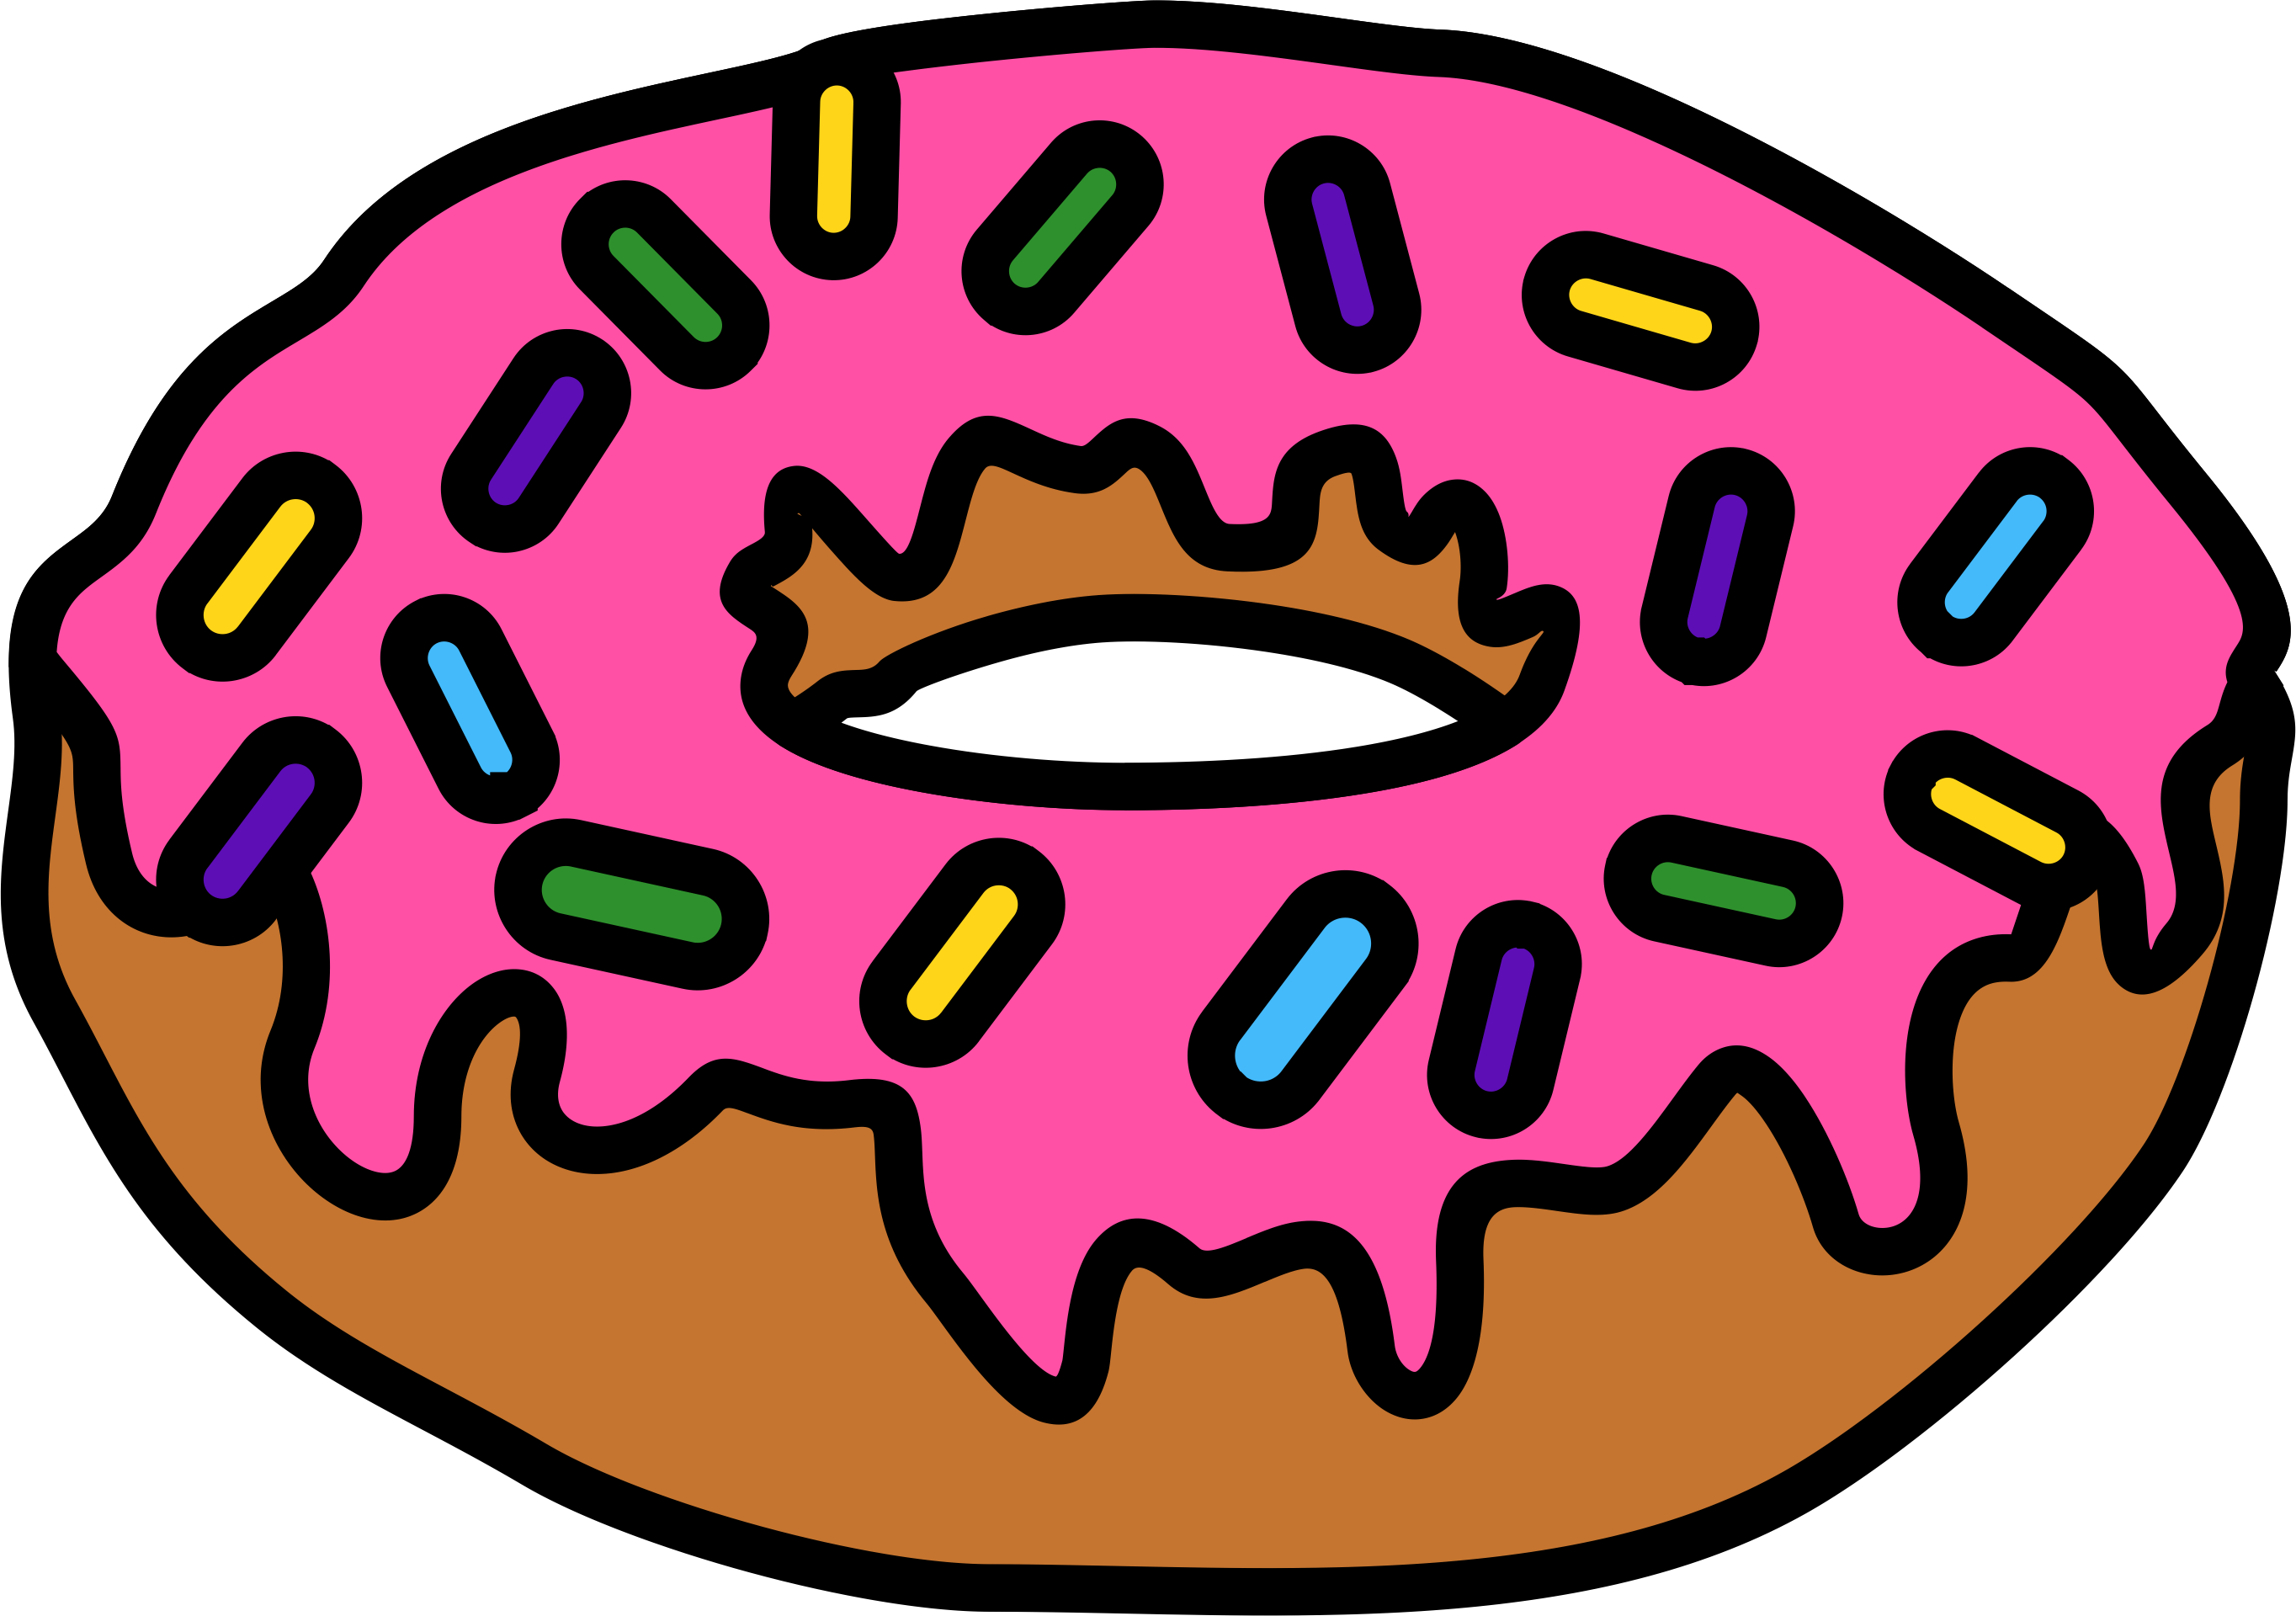 Donuts Doughnut Lounge National Doughnut Day Cafe Clip art.